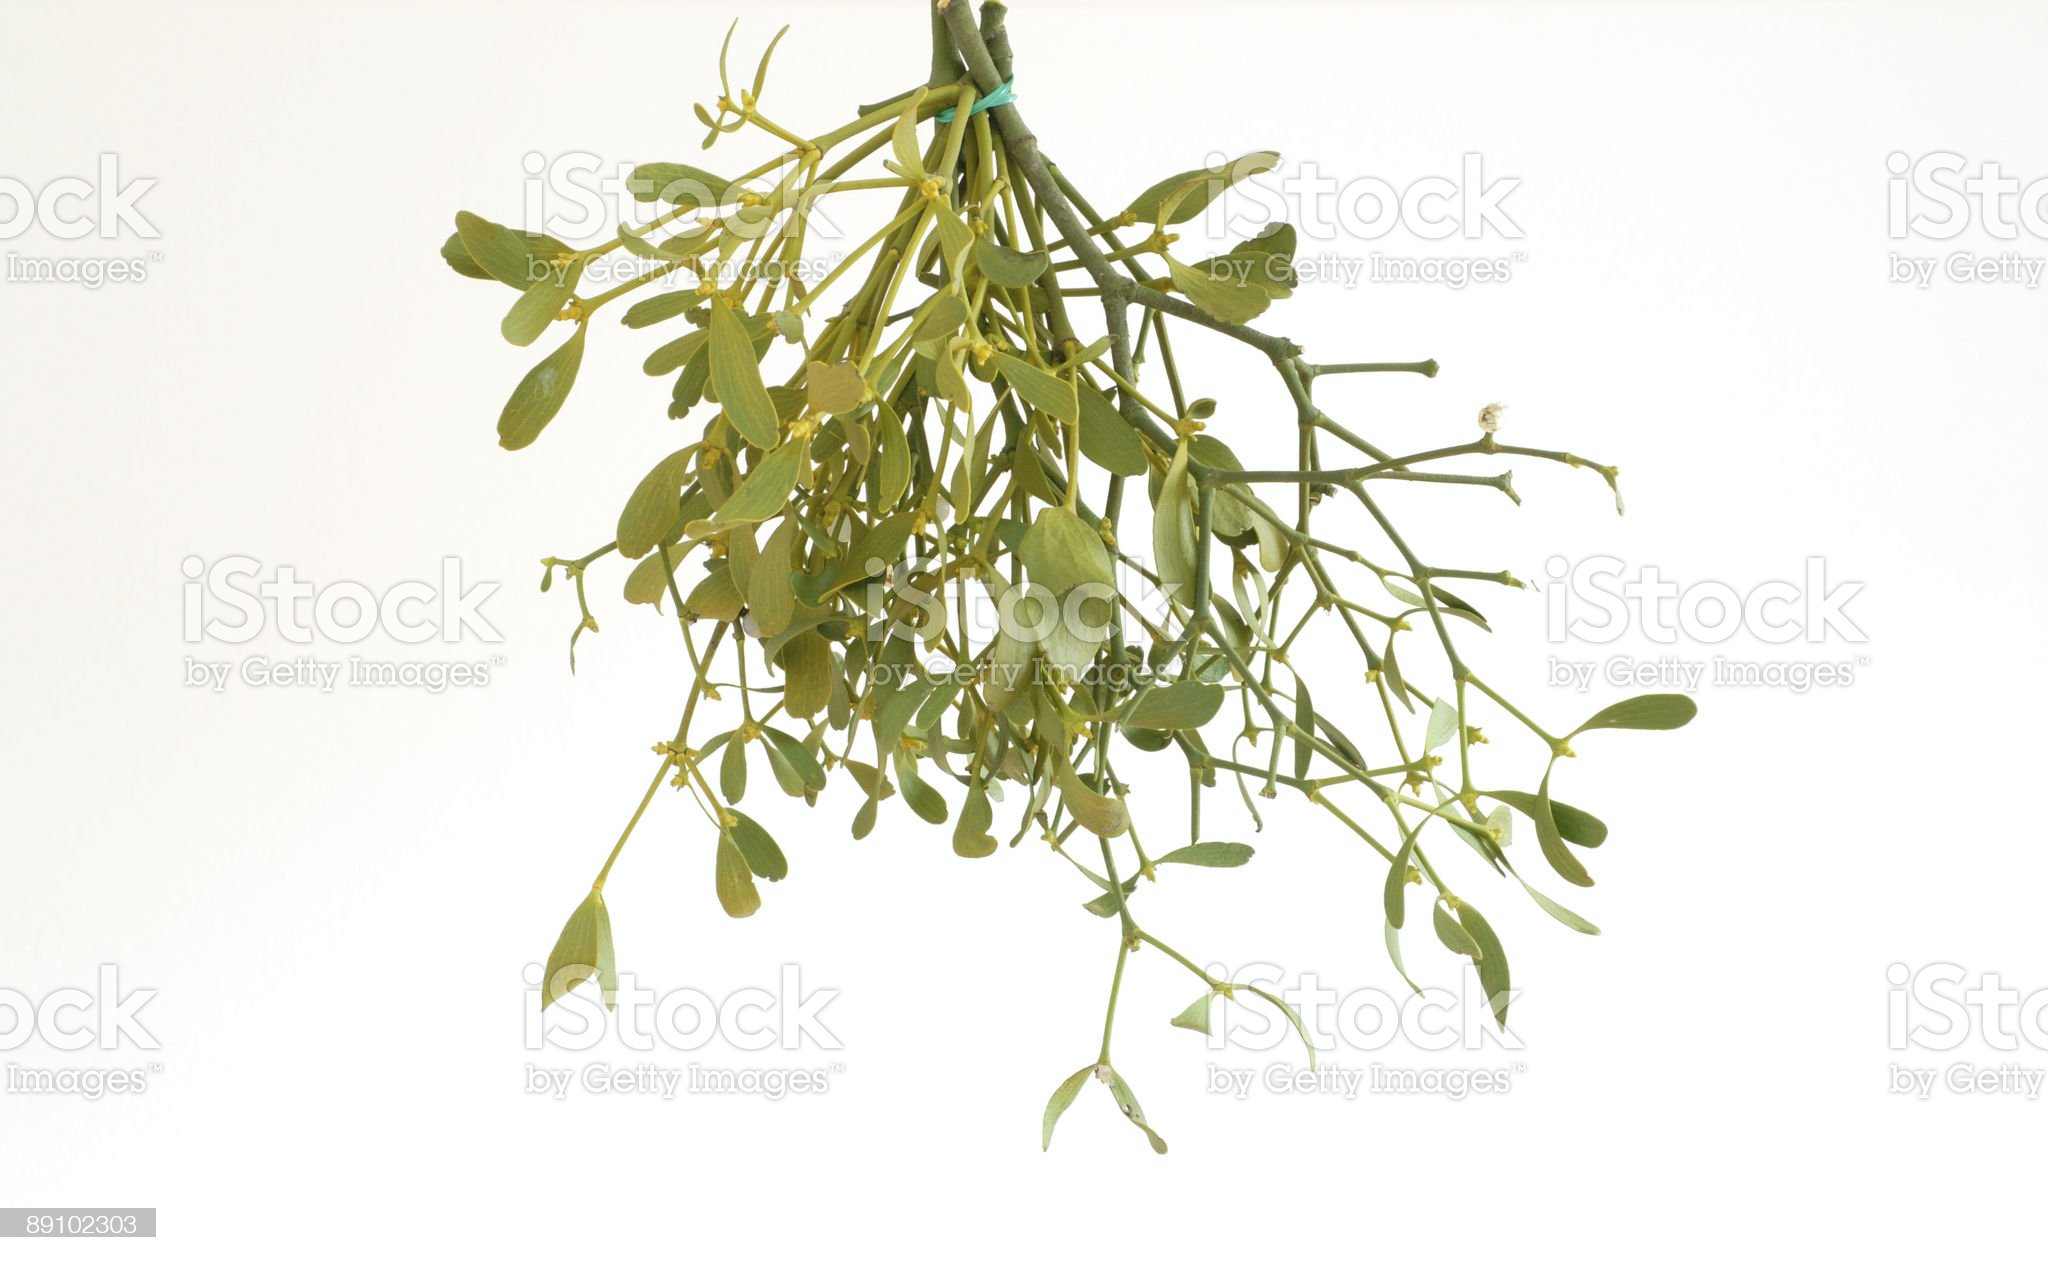 Hanging mistletoe against a white background royalty-free stock photo